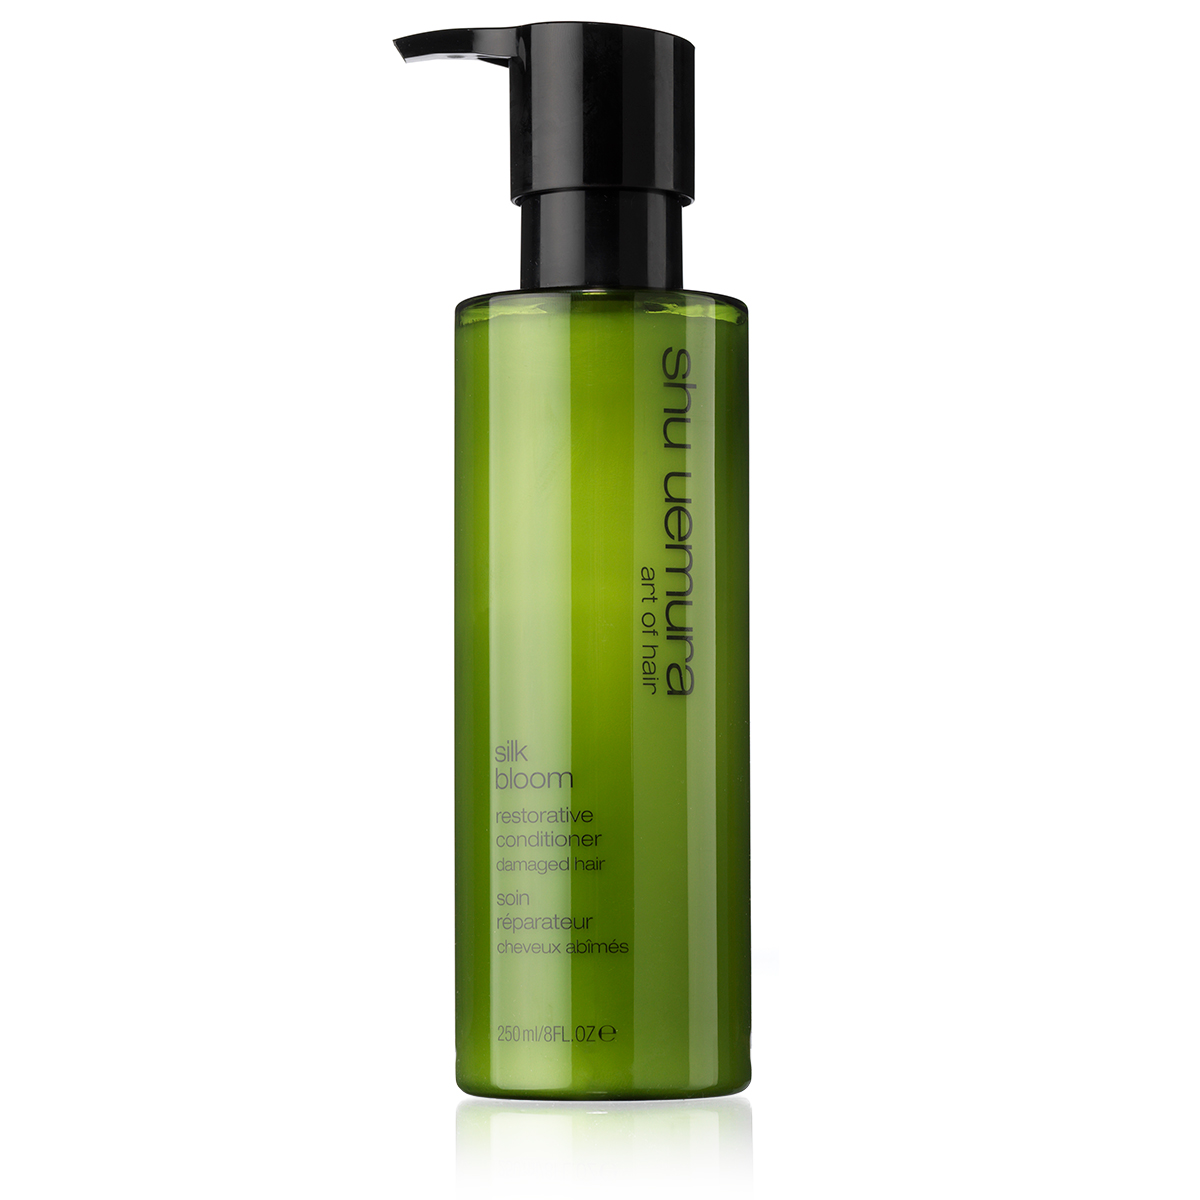 Shu Uemura Silk Bloom Conditioner - 250 ml